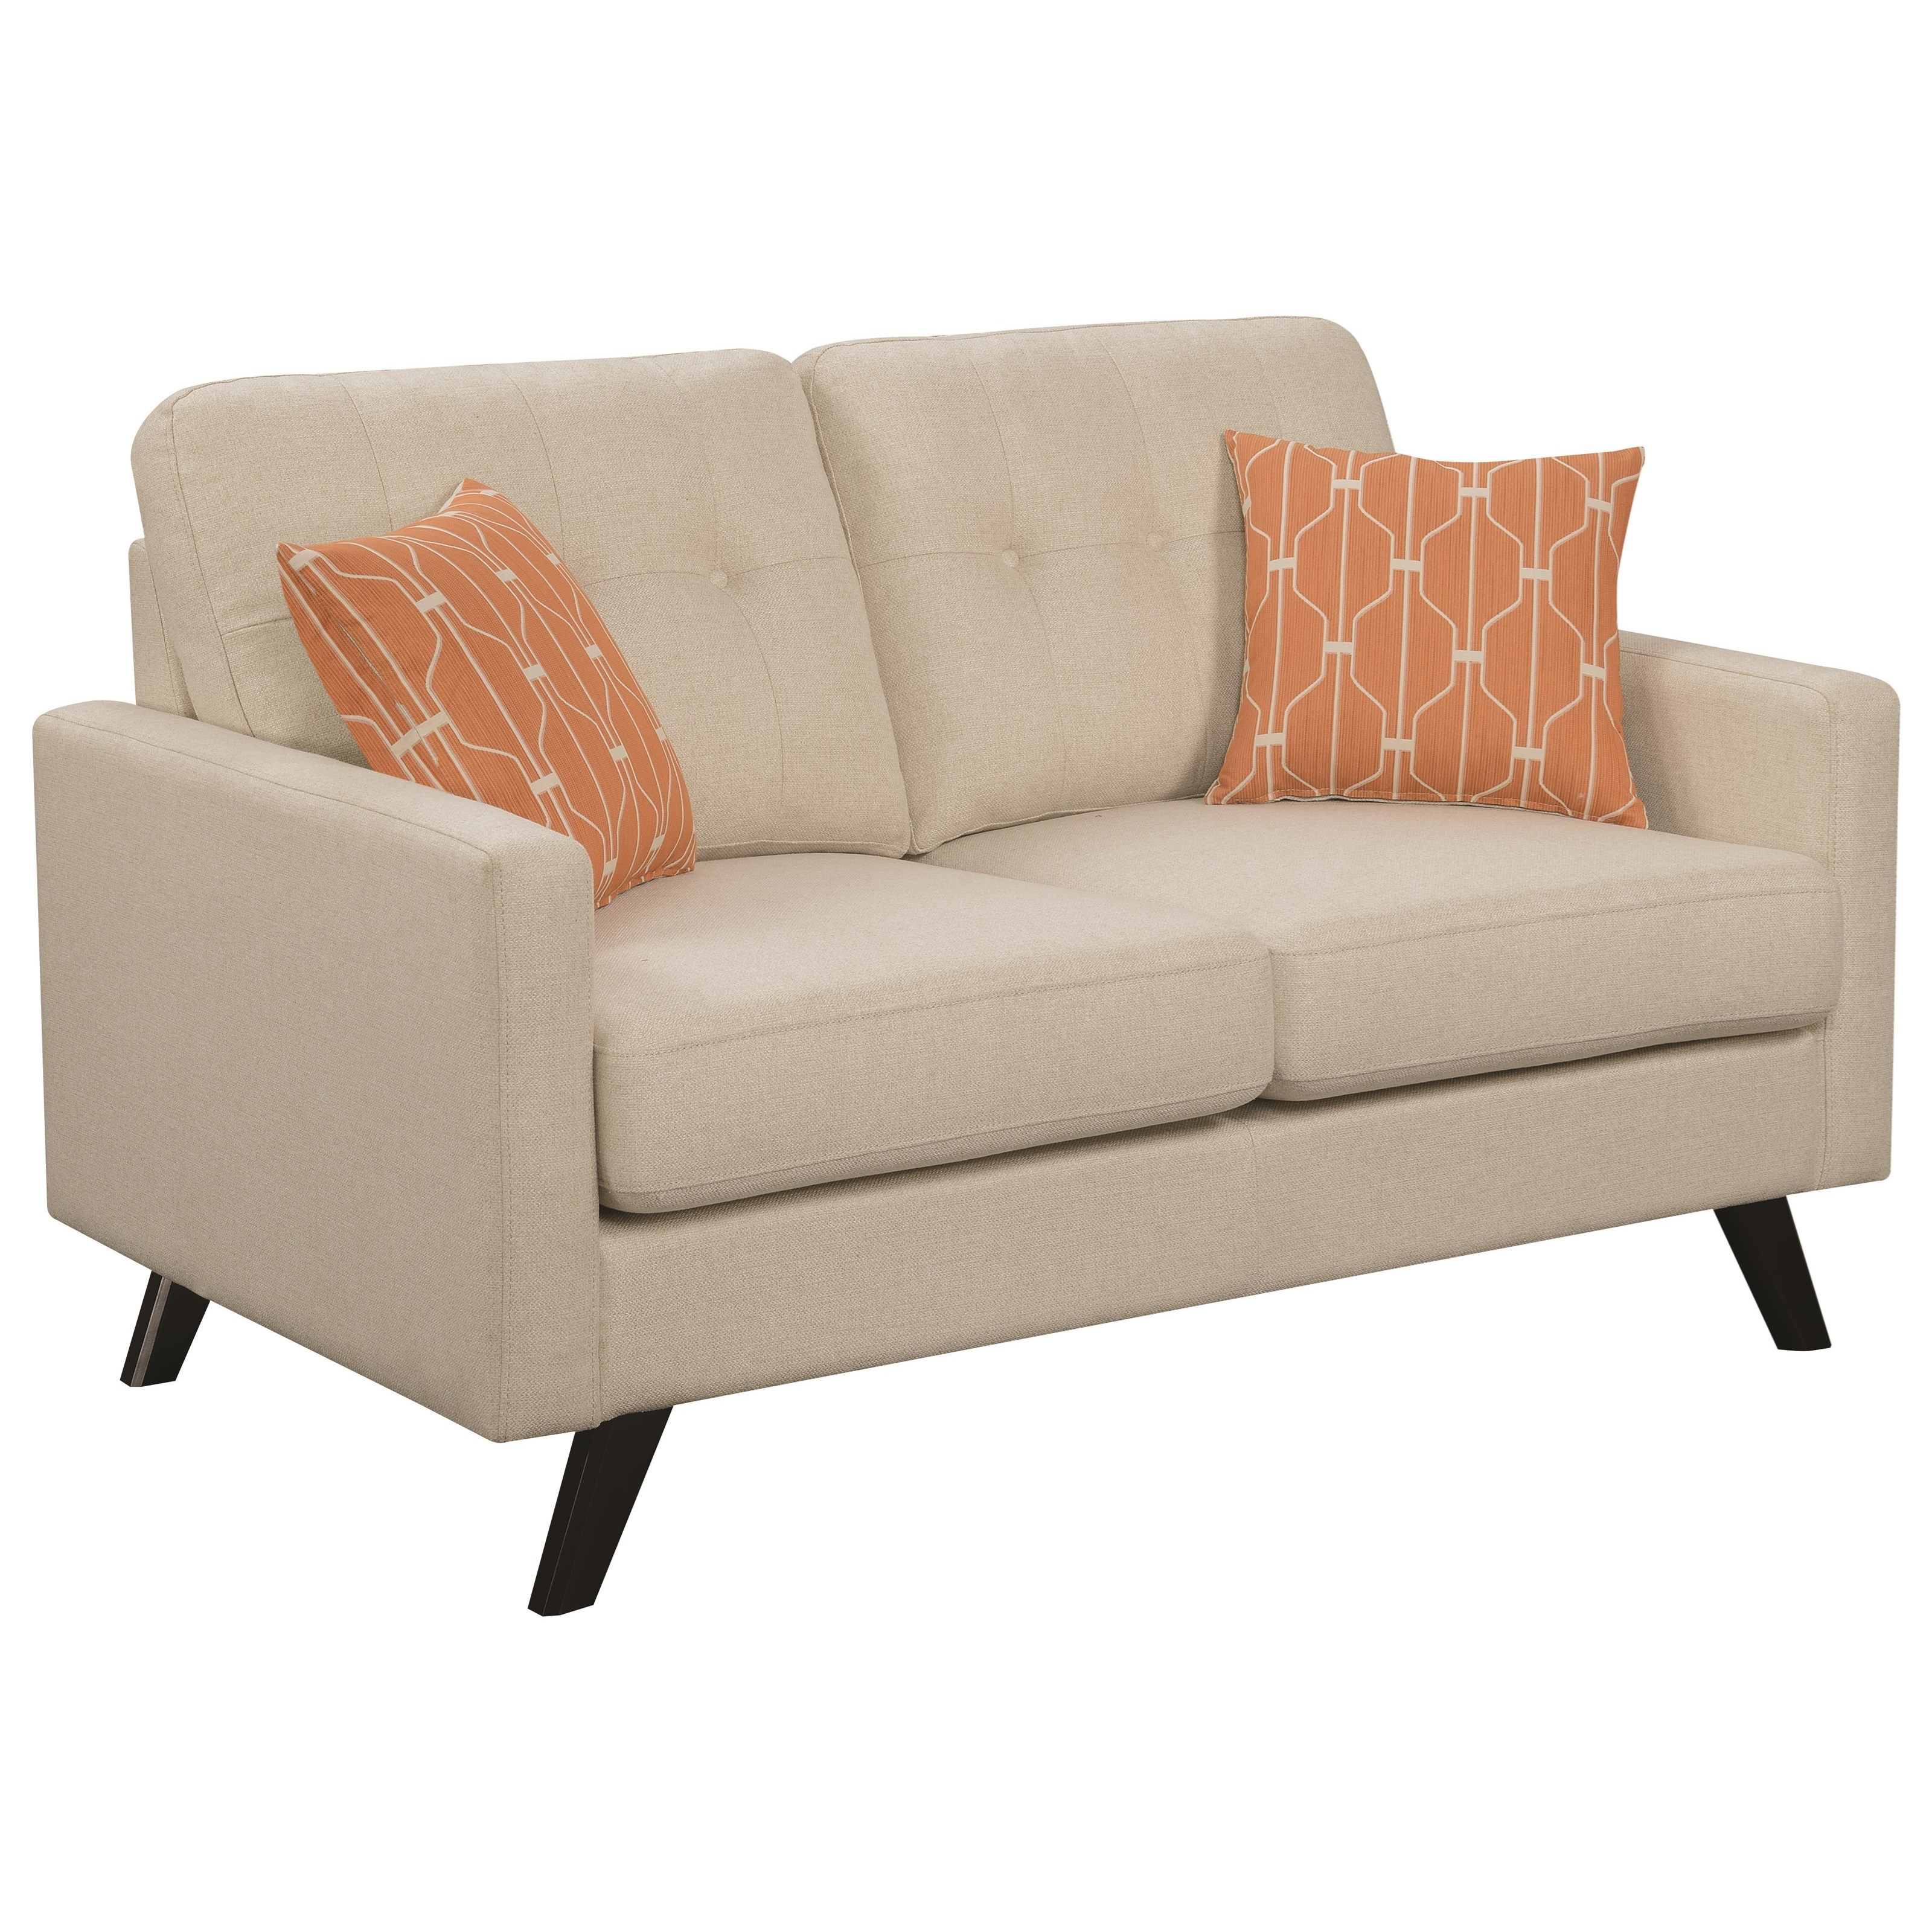 Montana Mid Century Modern Loveseat Quality Furniture At Affordable Prices In Philadelphia Main Line Pa